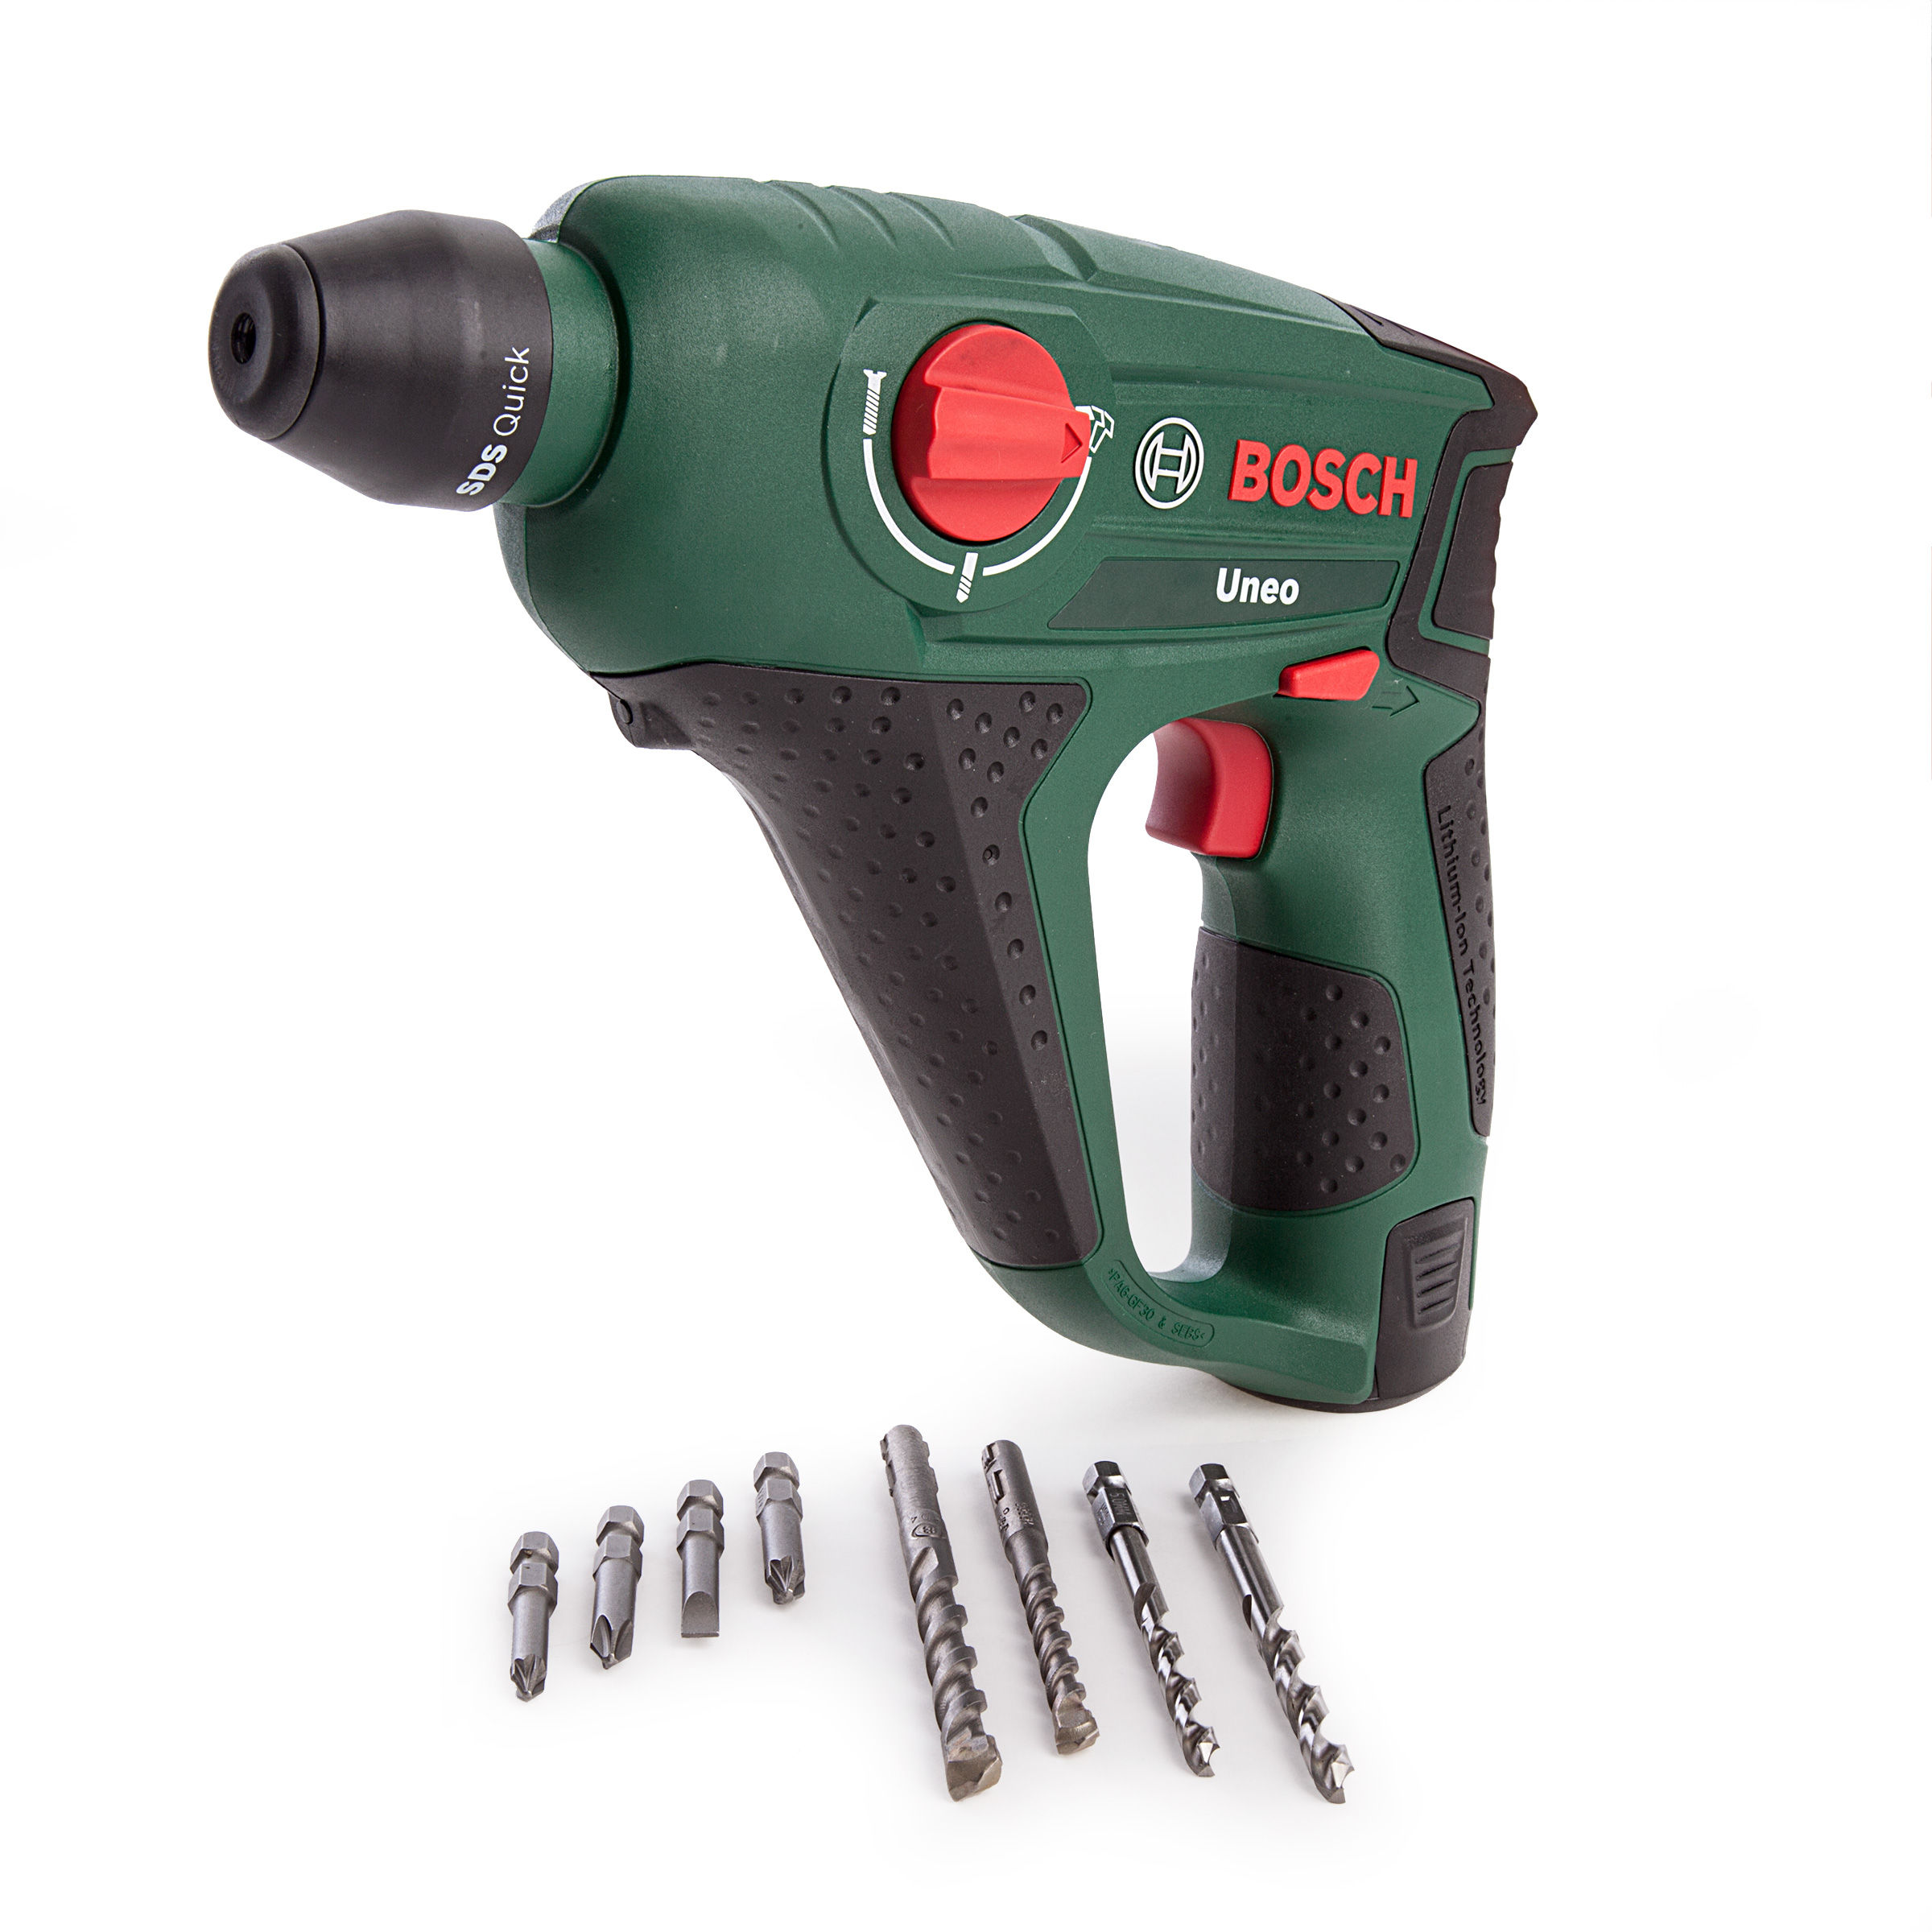 toolstop bosch uneo 10 8 li 2 rotary hammer drill 1 x 1 5ah batteries. Black Bedroom Furniture Sets. Home Design Ideas